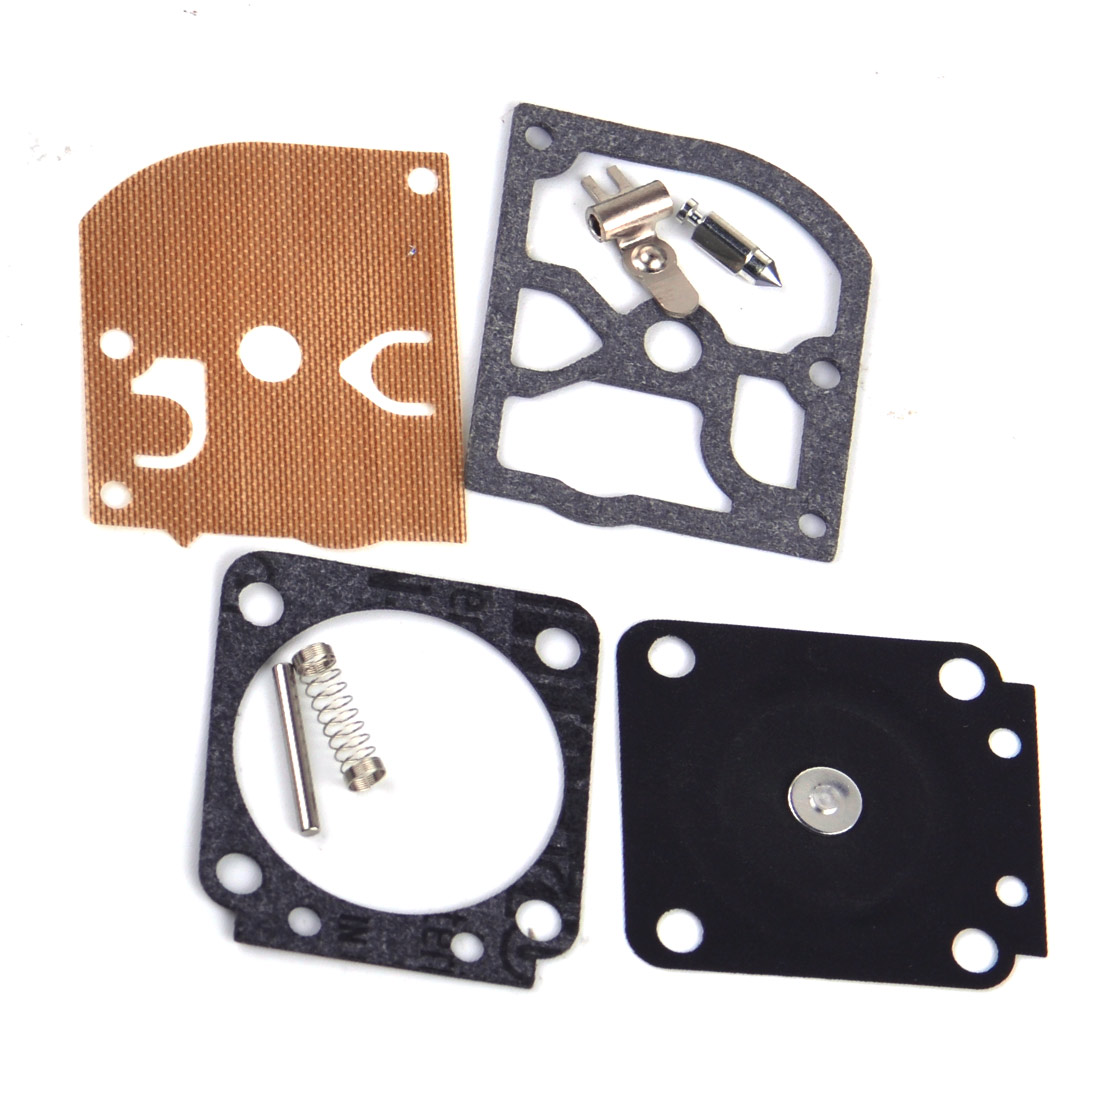 LETAOSK New Carburetor Carb Gasket Replacement Repair Kit Fit For Stihl 017 018 MS170 MS180 Chainsaw